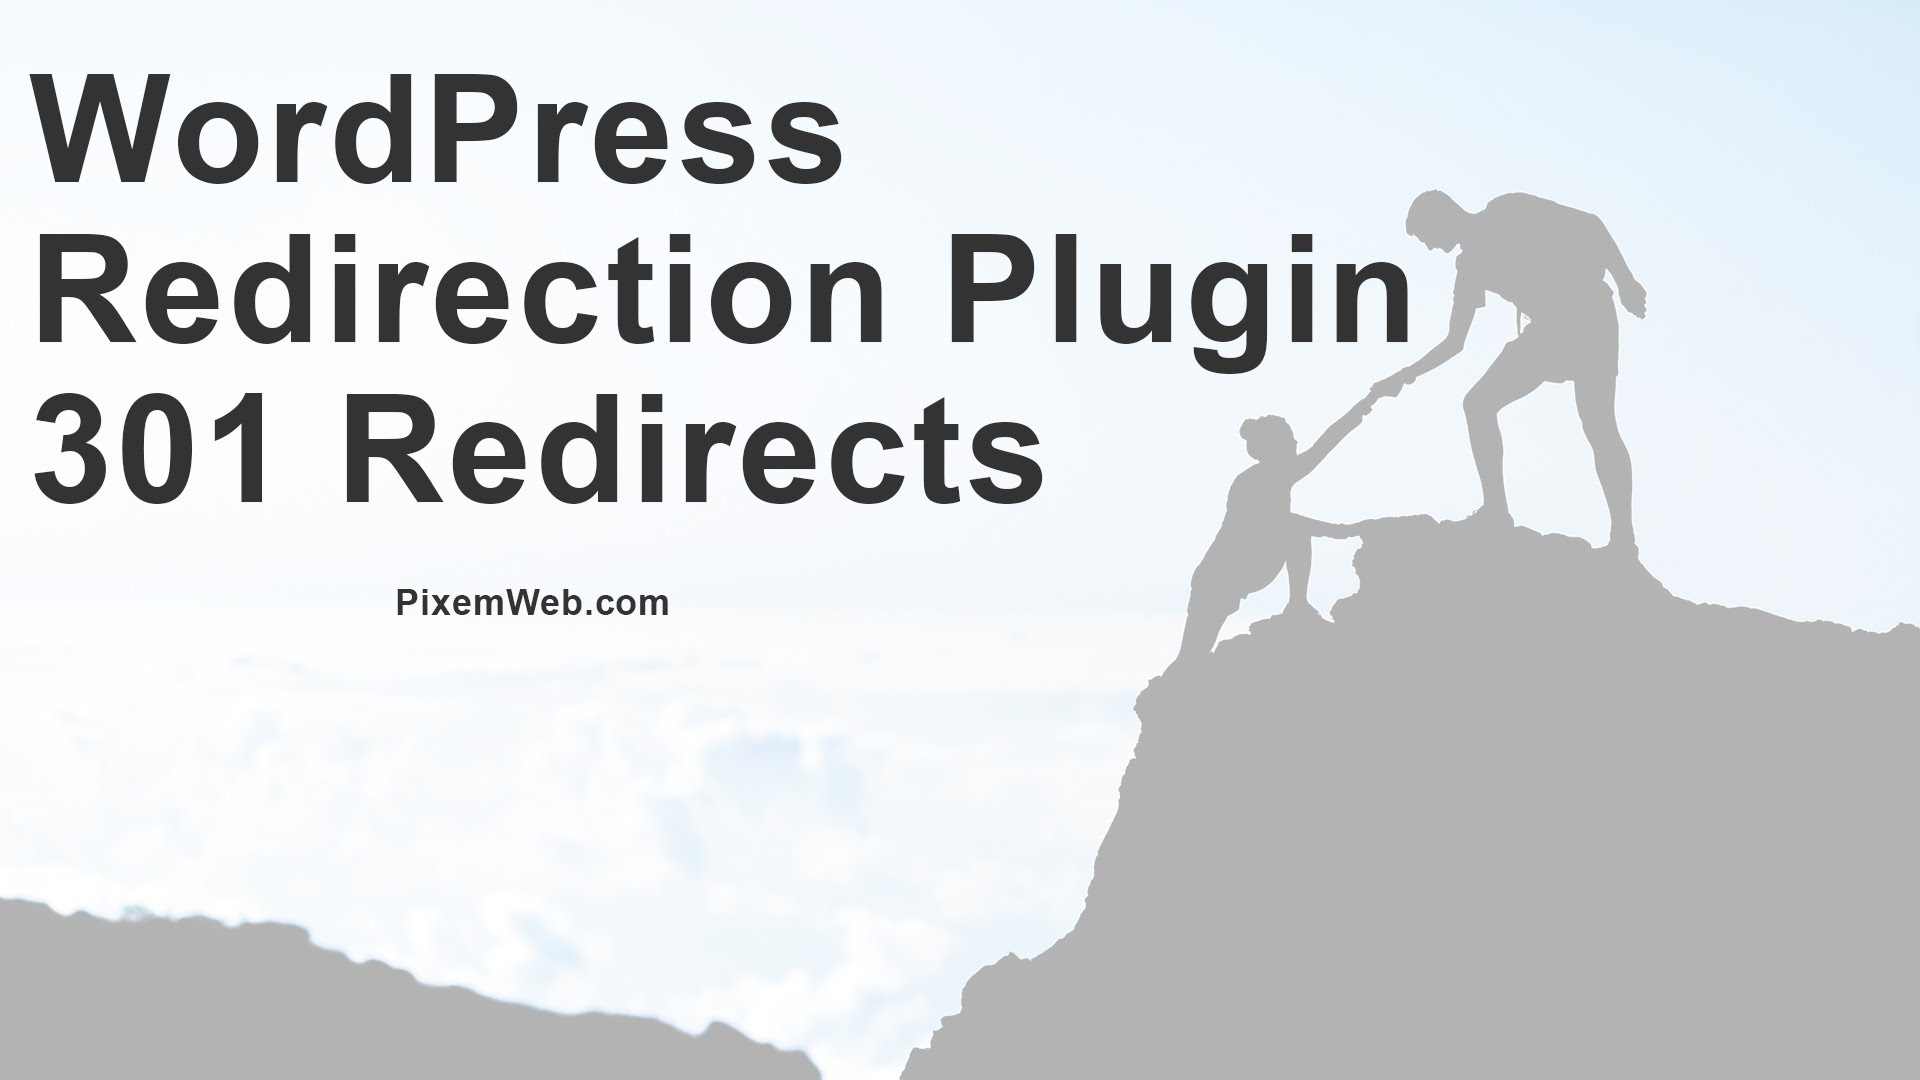 SEO Friendly 301 Redirects with WordPress Redirection Plugin